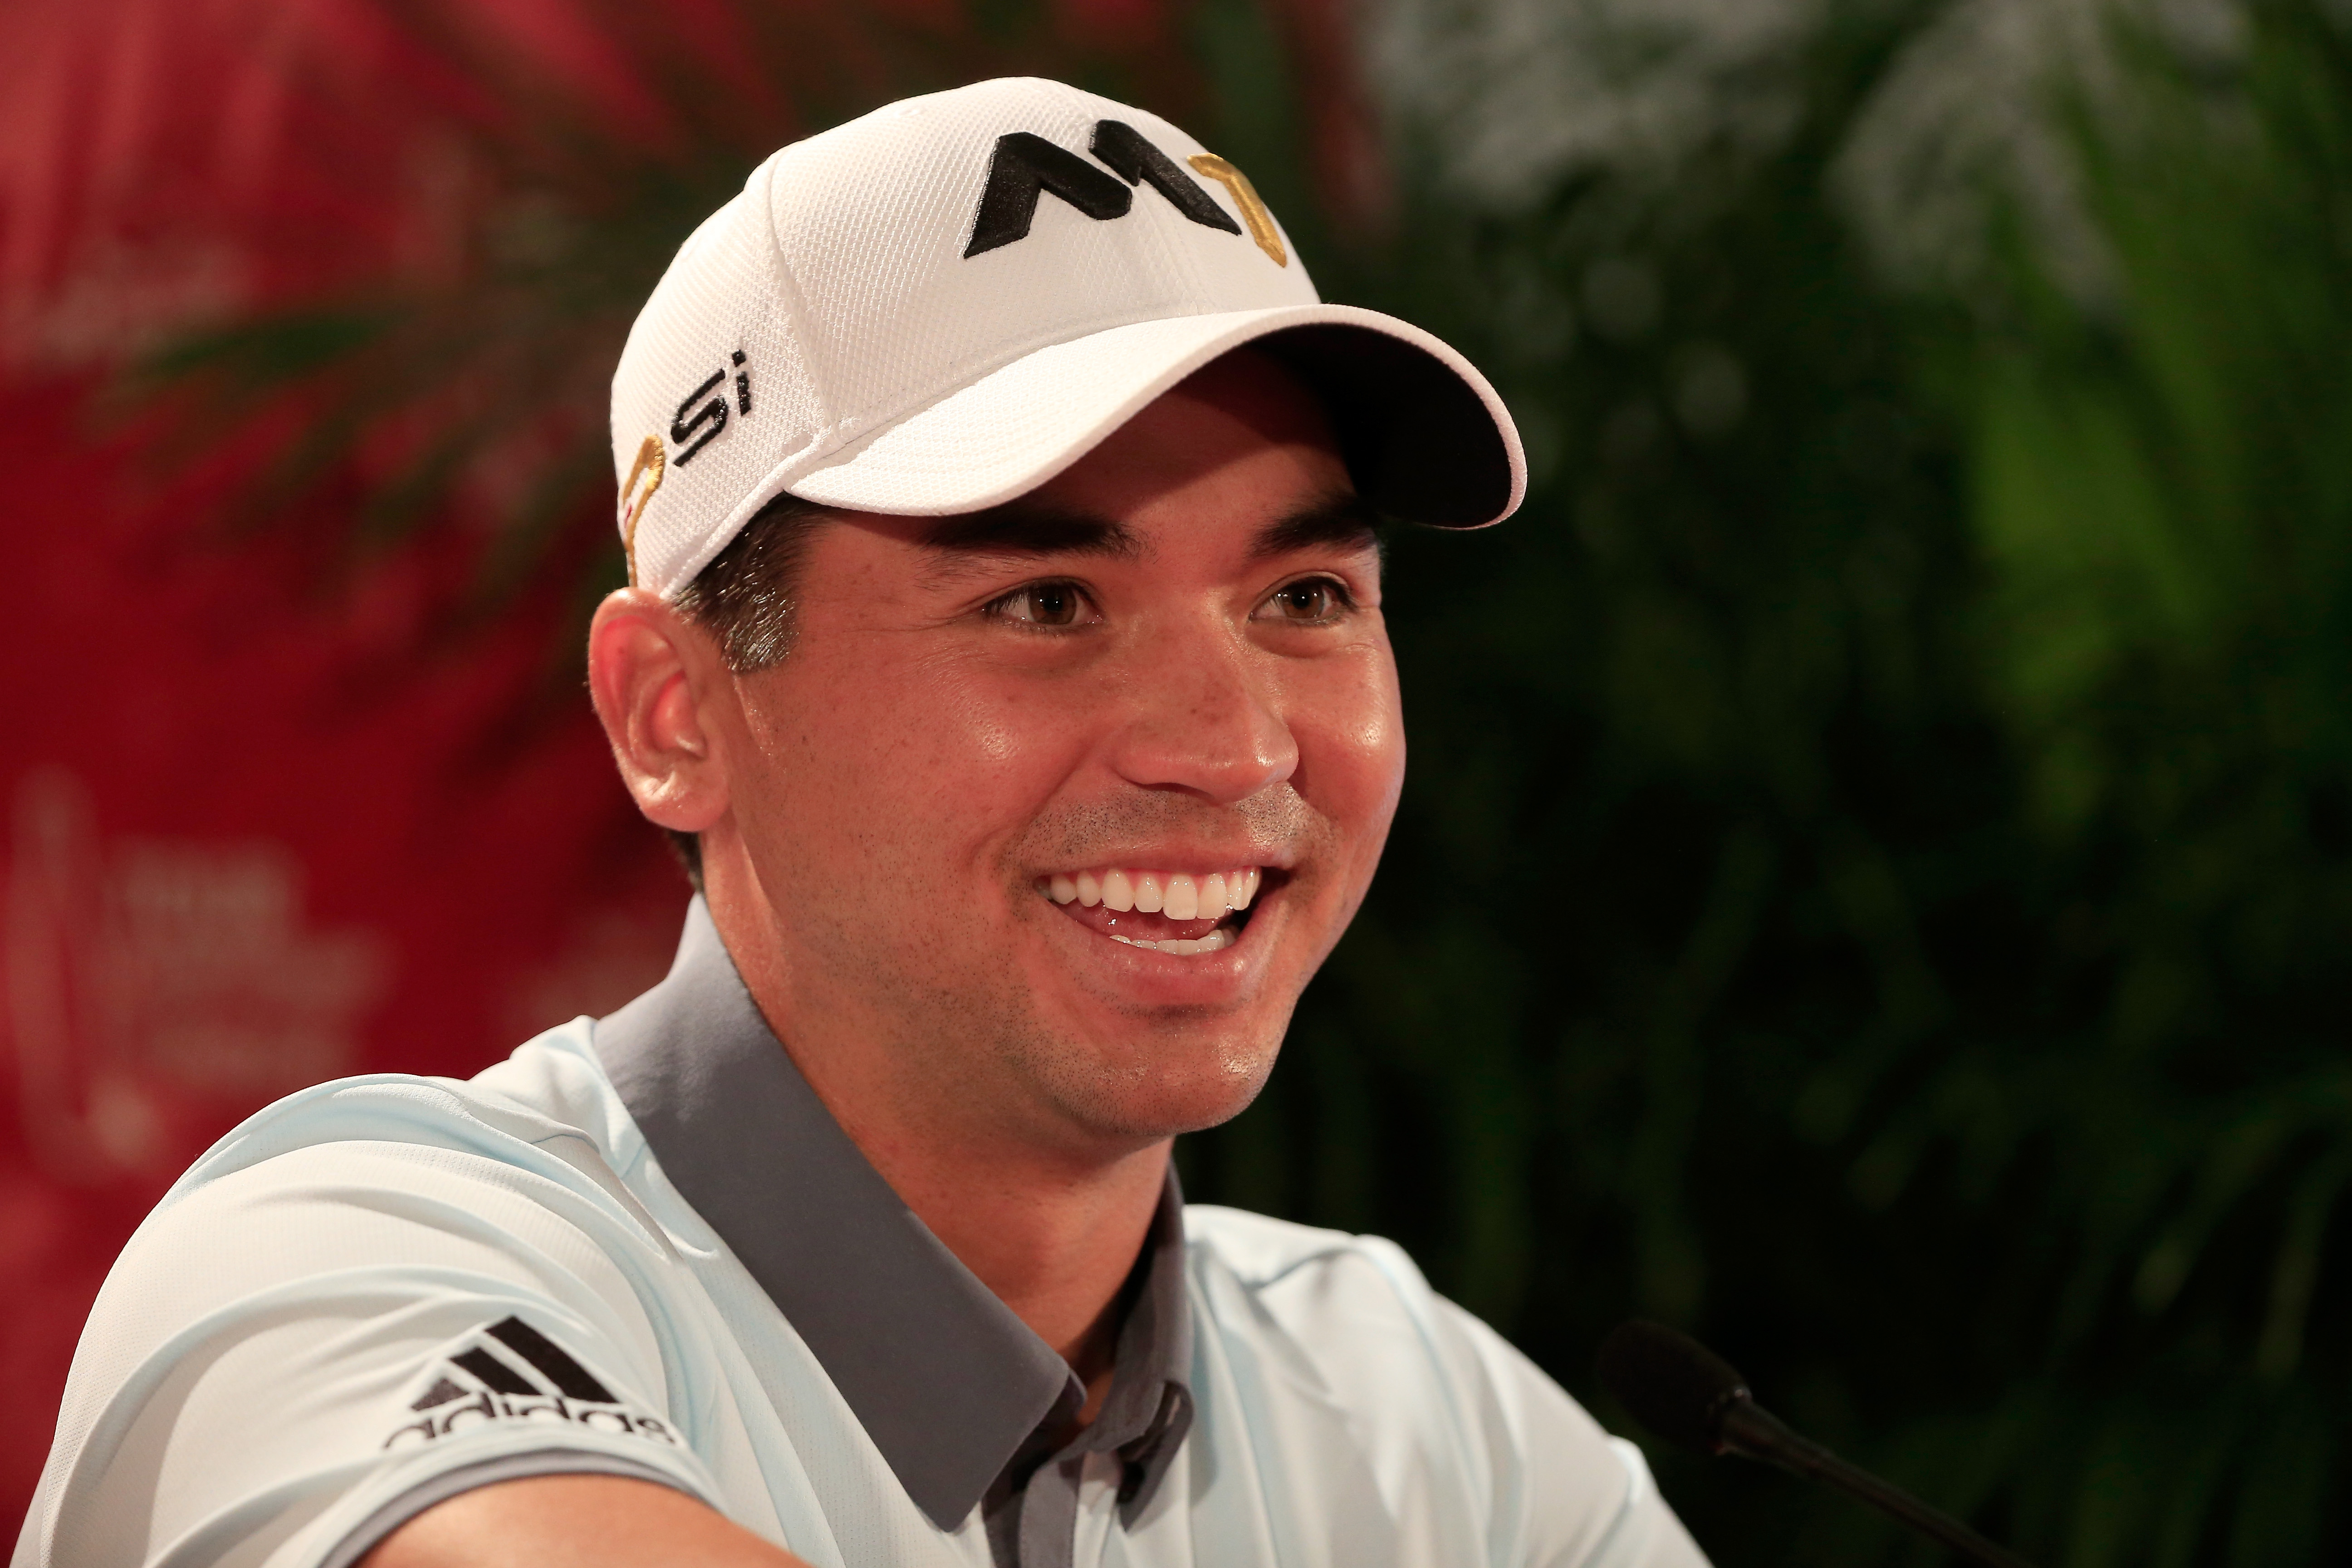 Dyson would pick Jason Day as his 2015 player of the year (Photo: Getty Images)